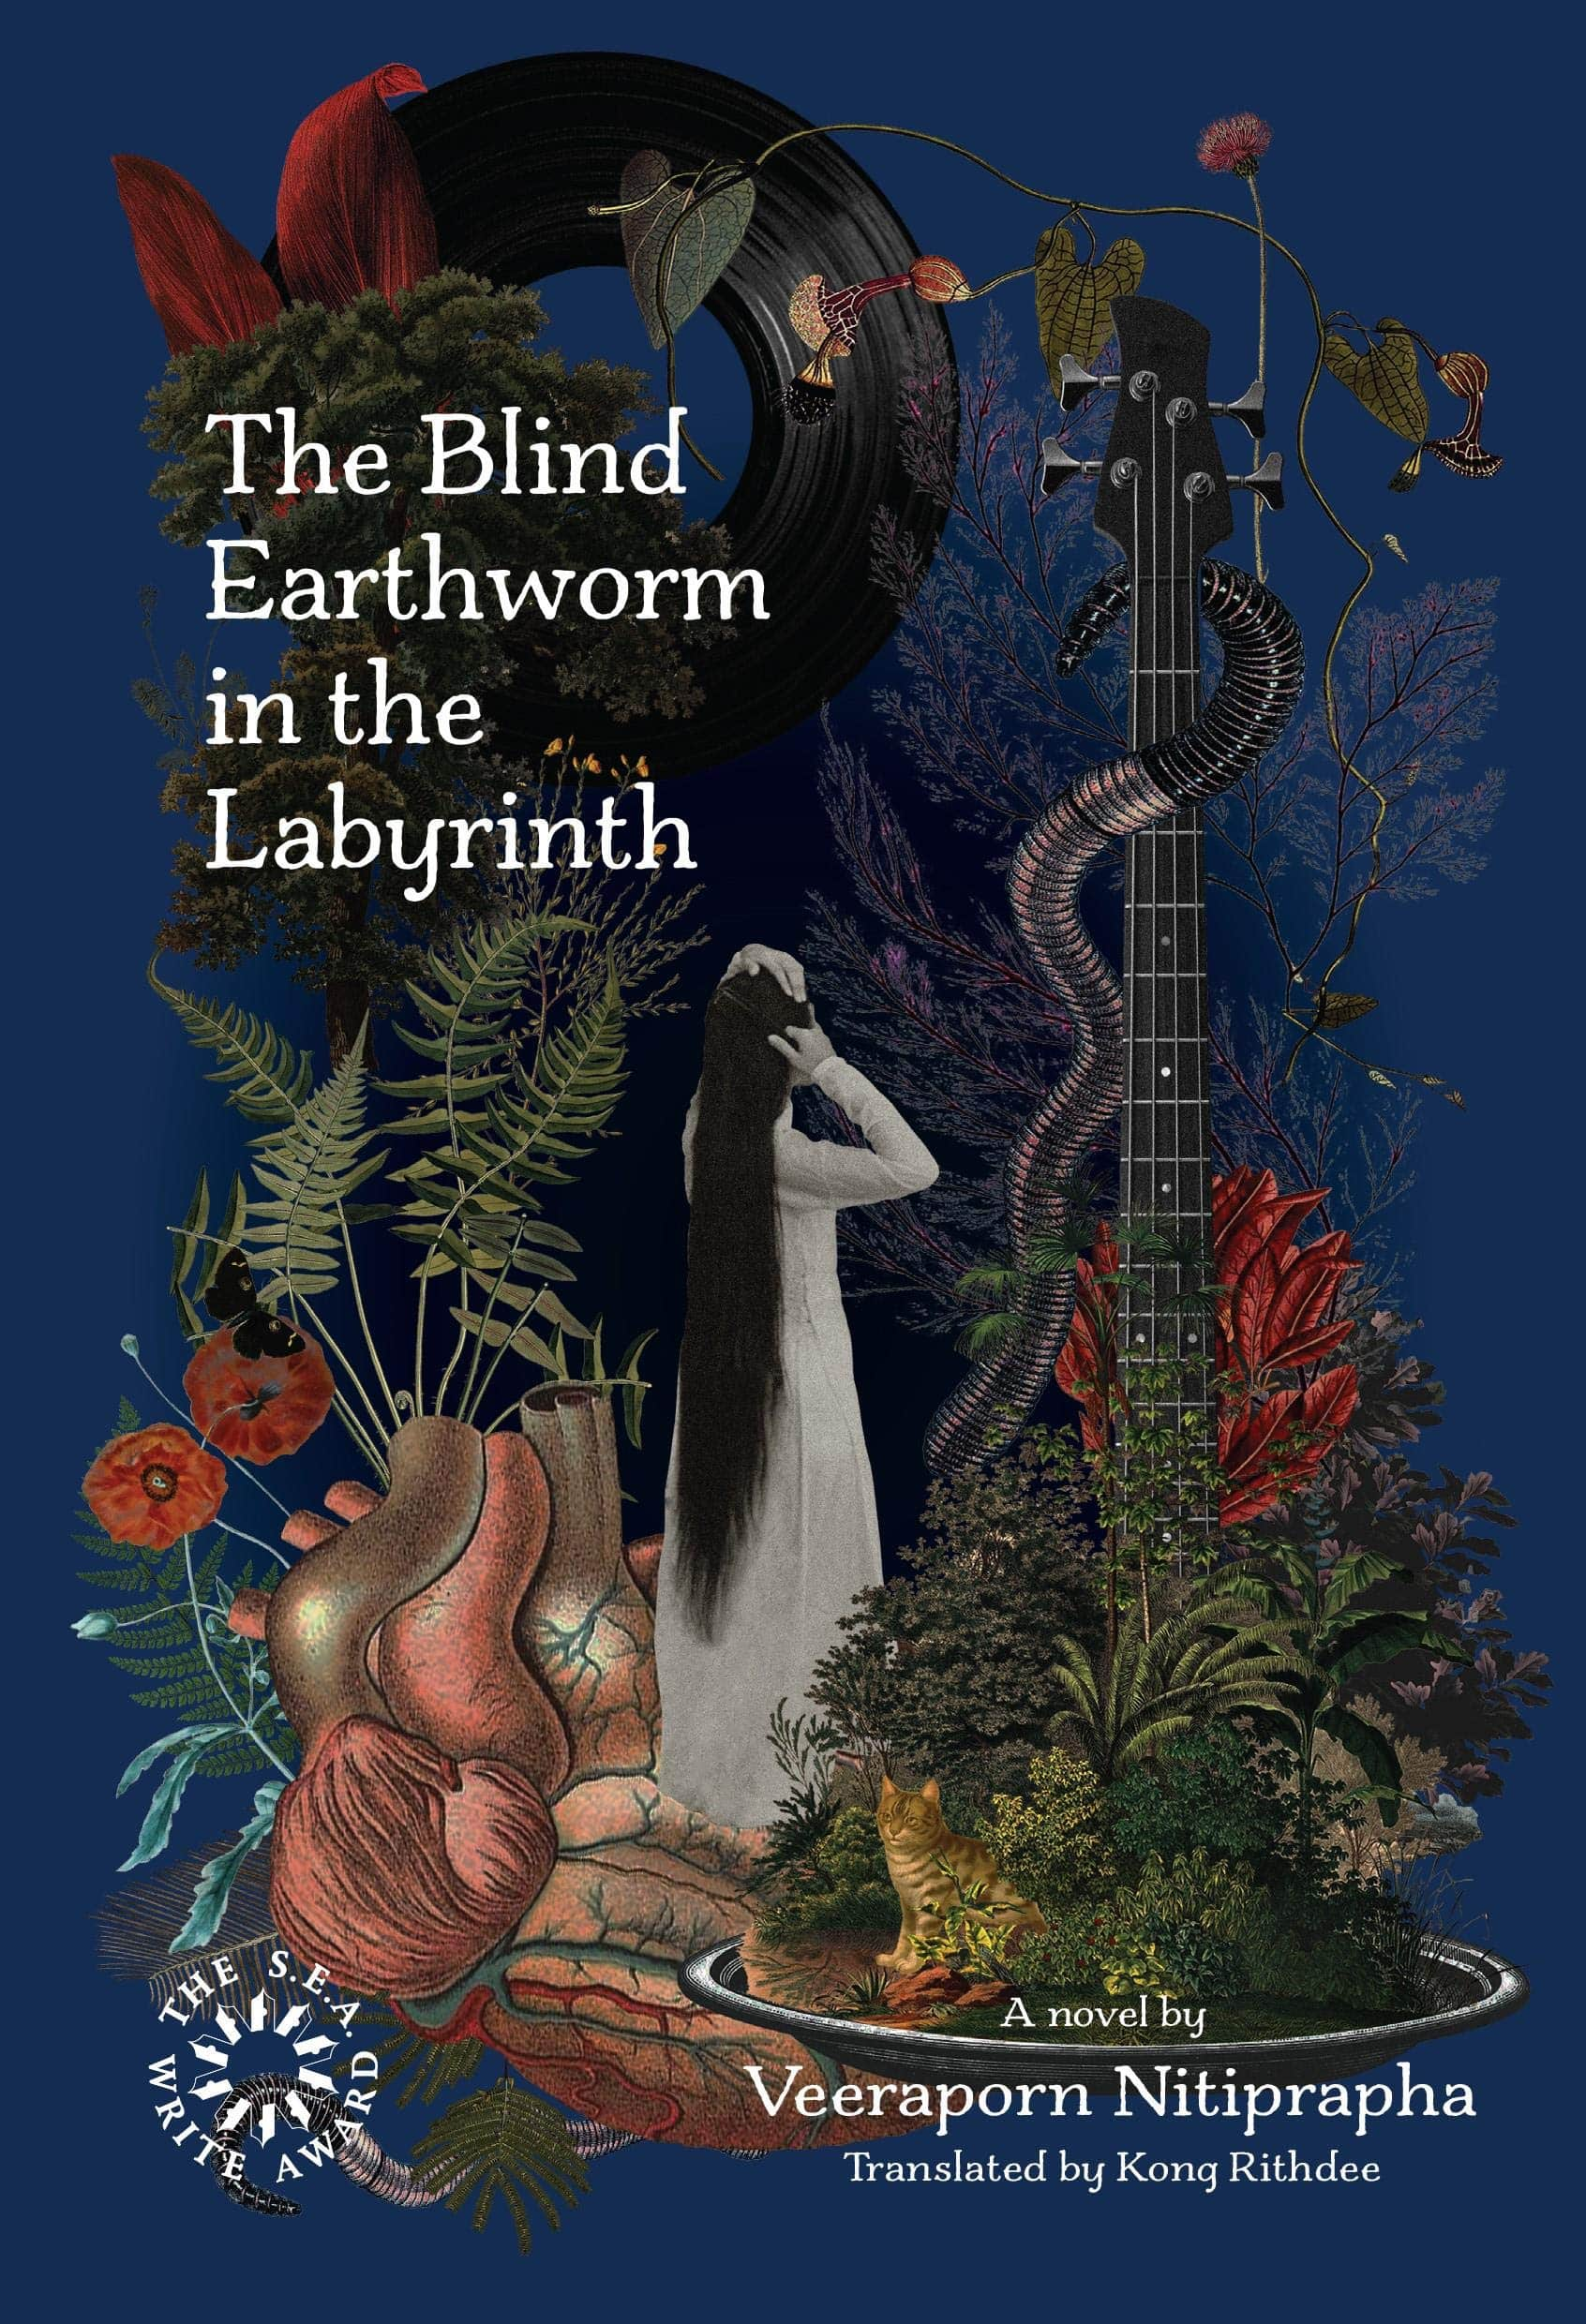 The Blind Earthworm in the Labyrinth by Veeraporn Nitiprapha, Domestic Fiction Set in Thailand, Published 2019